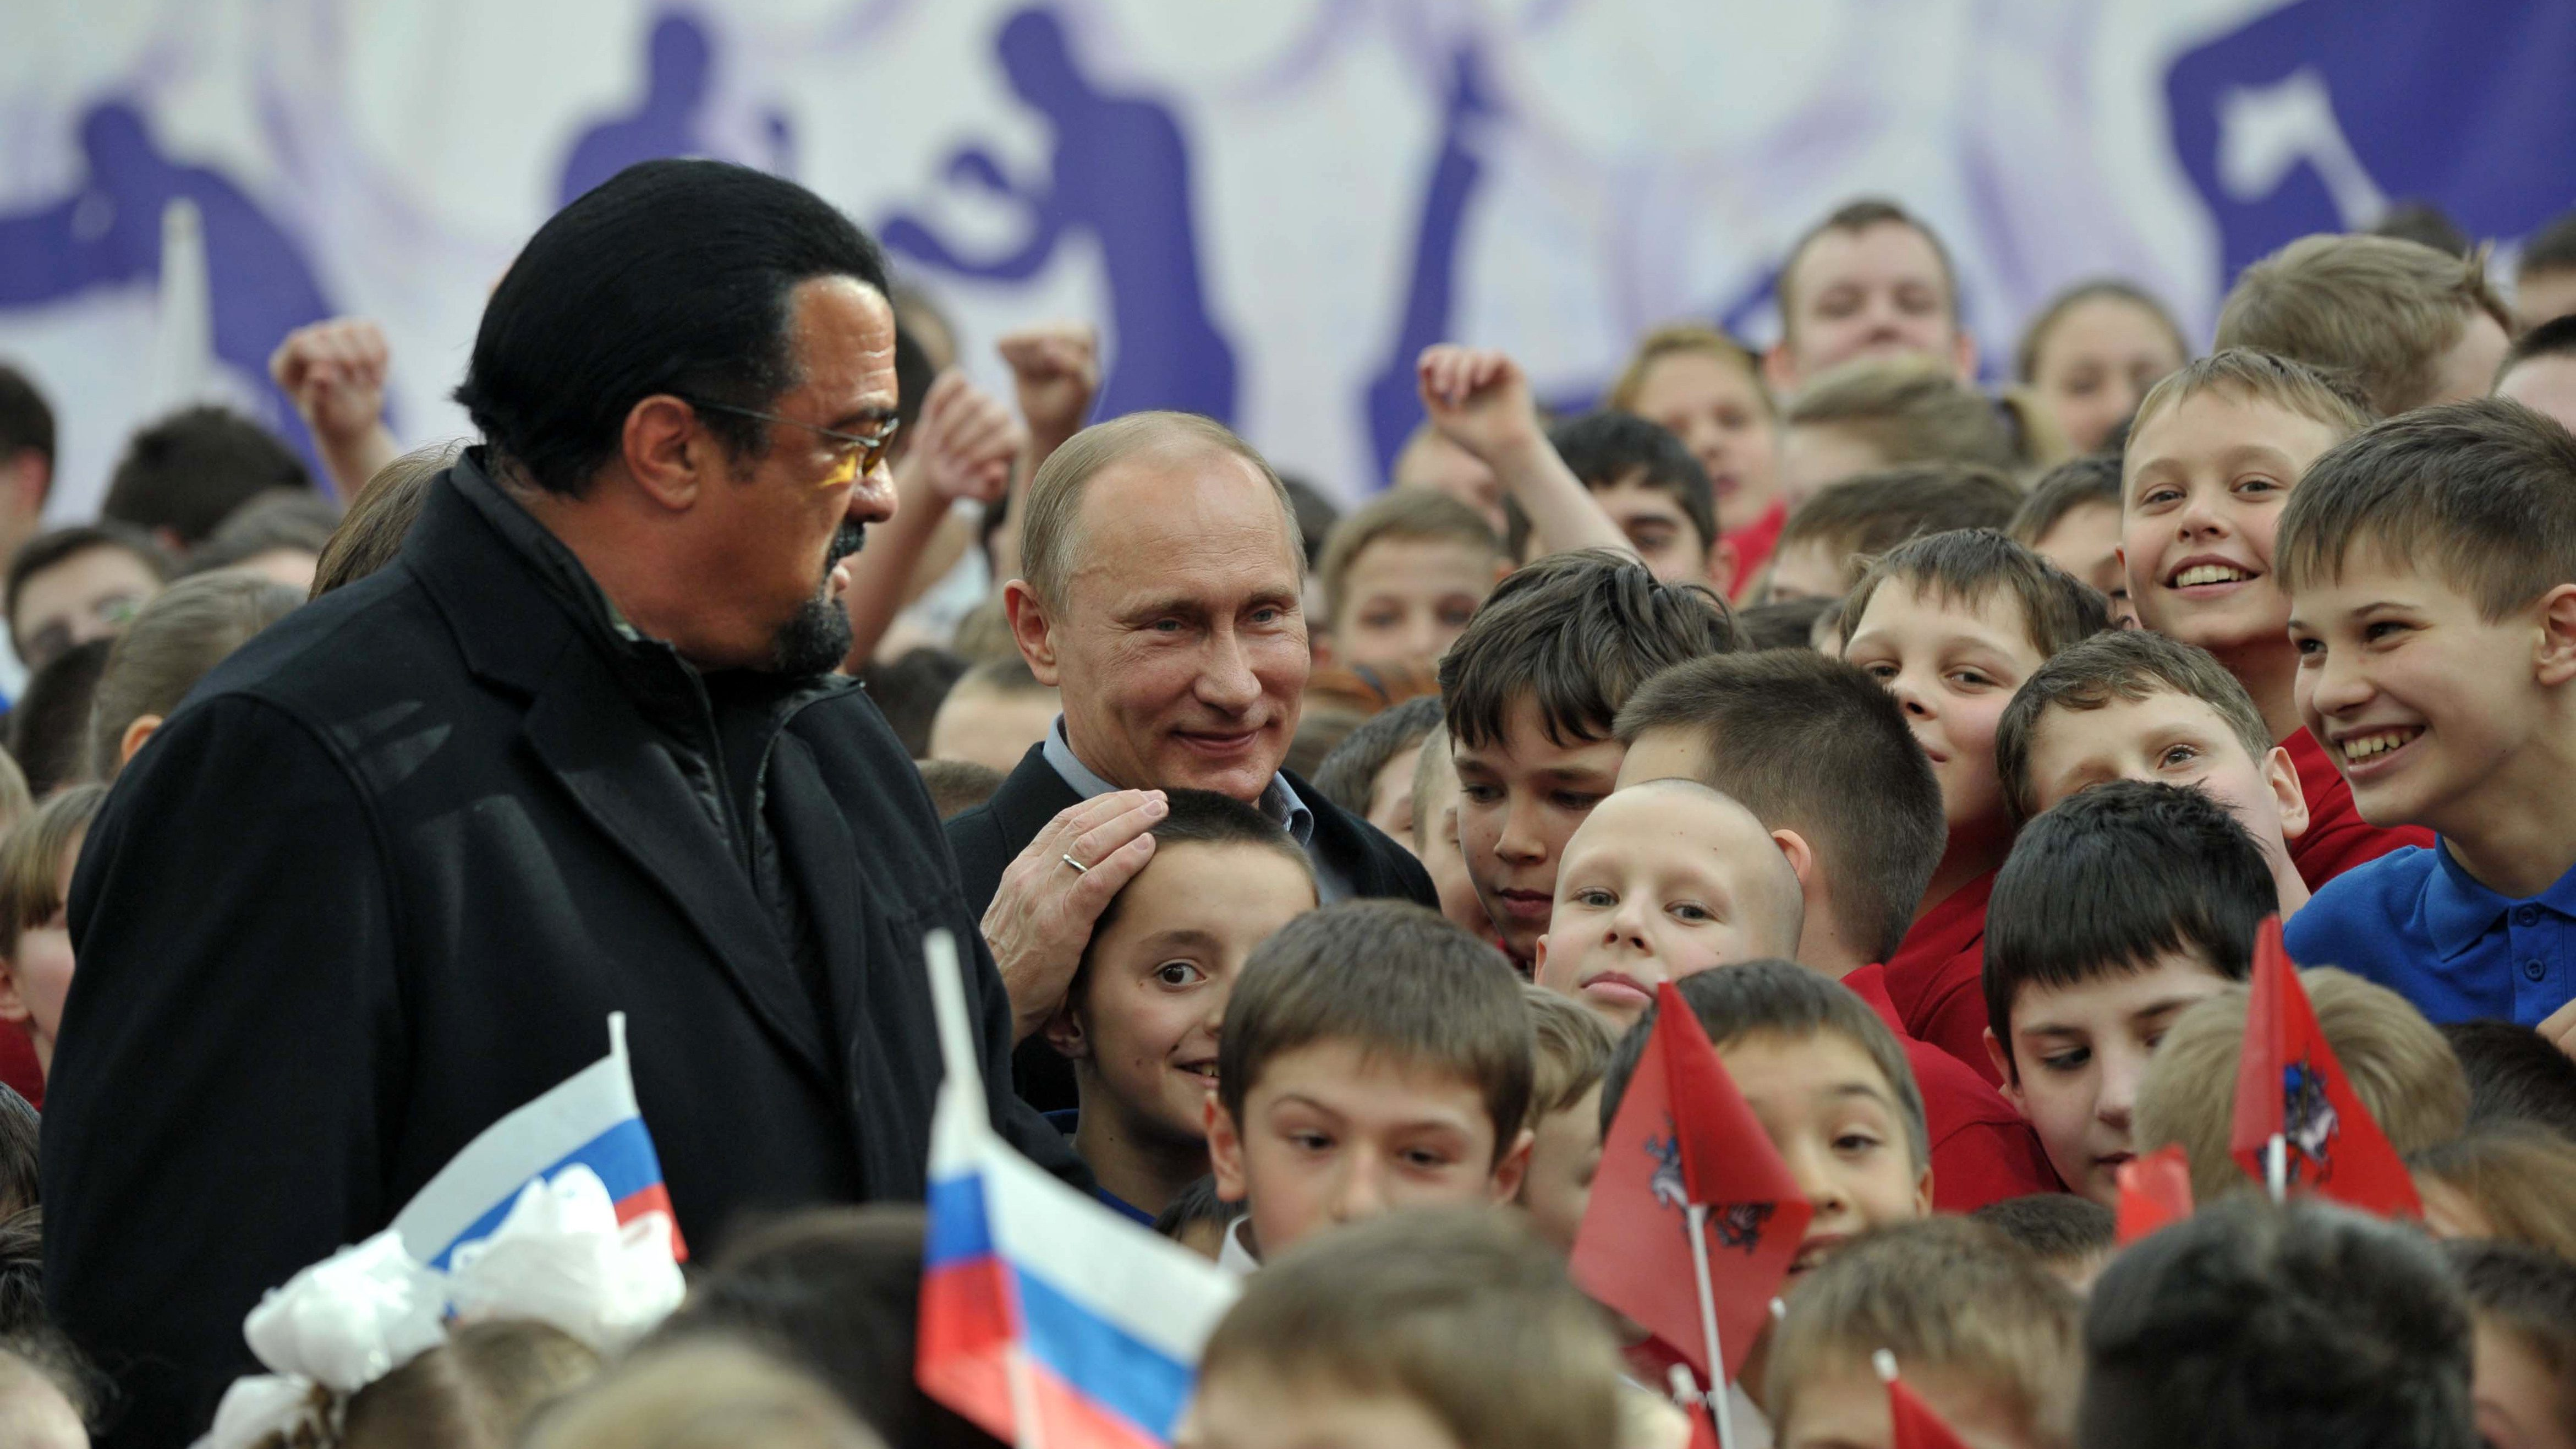 Steven Seagal and Vladimir Putin greet adoring crowds in Moscow